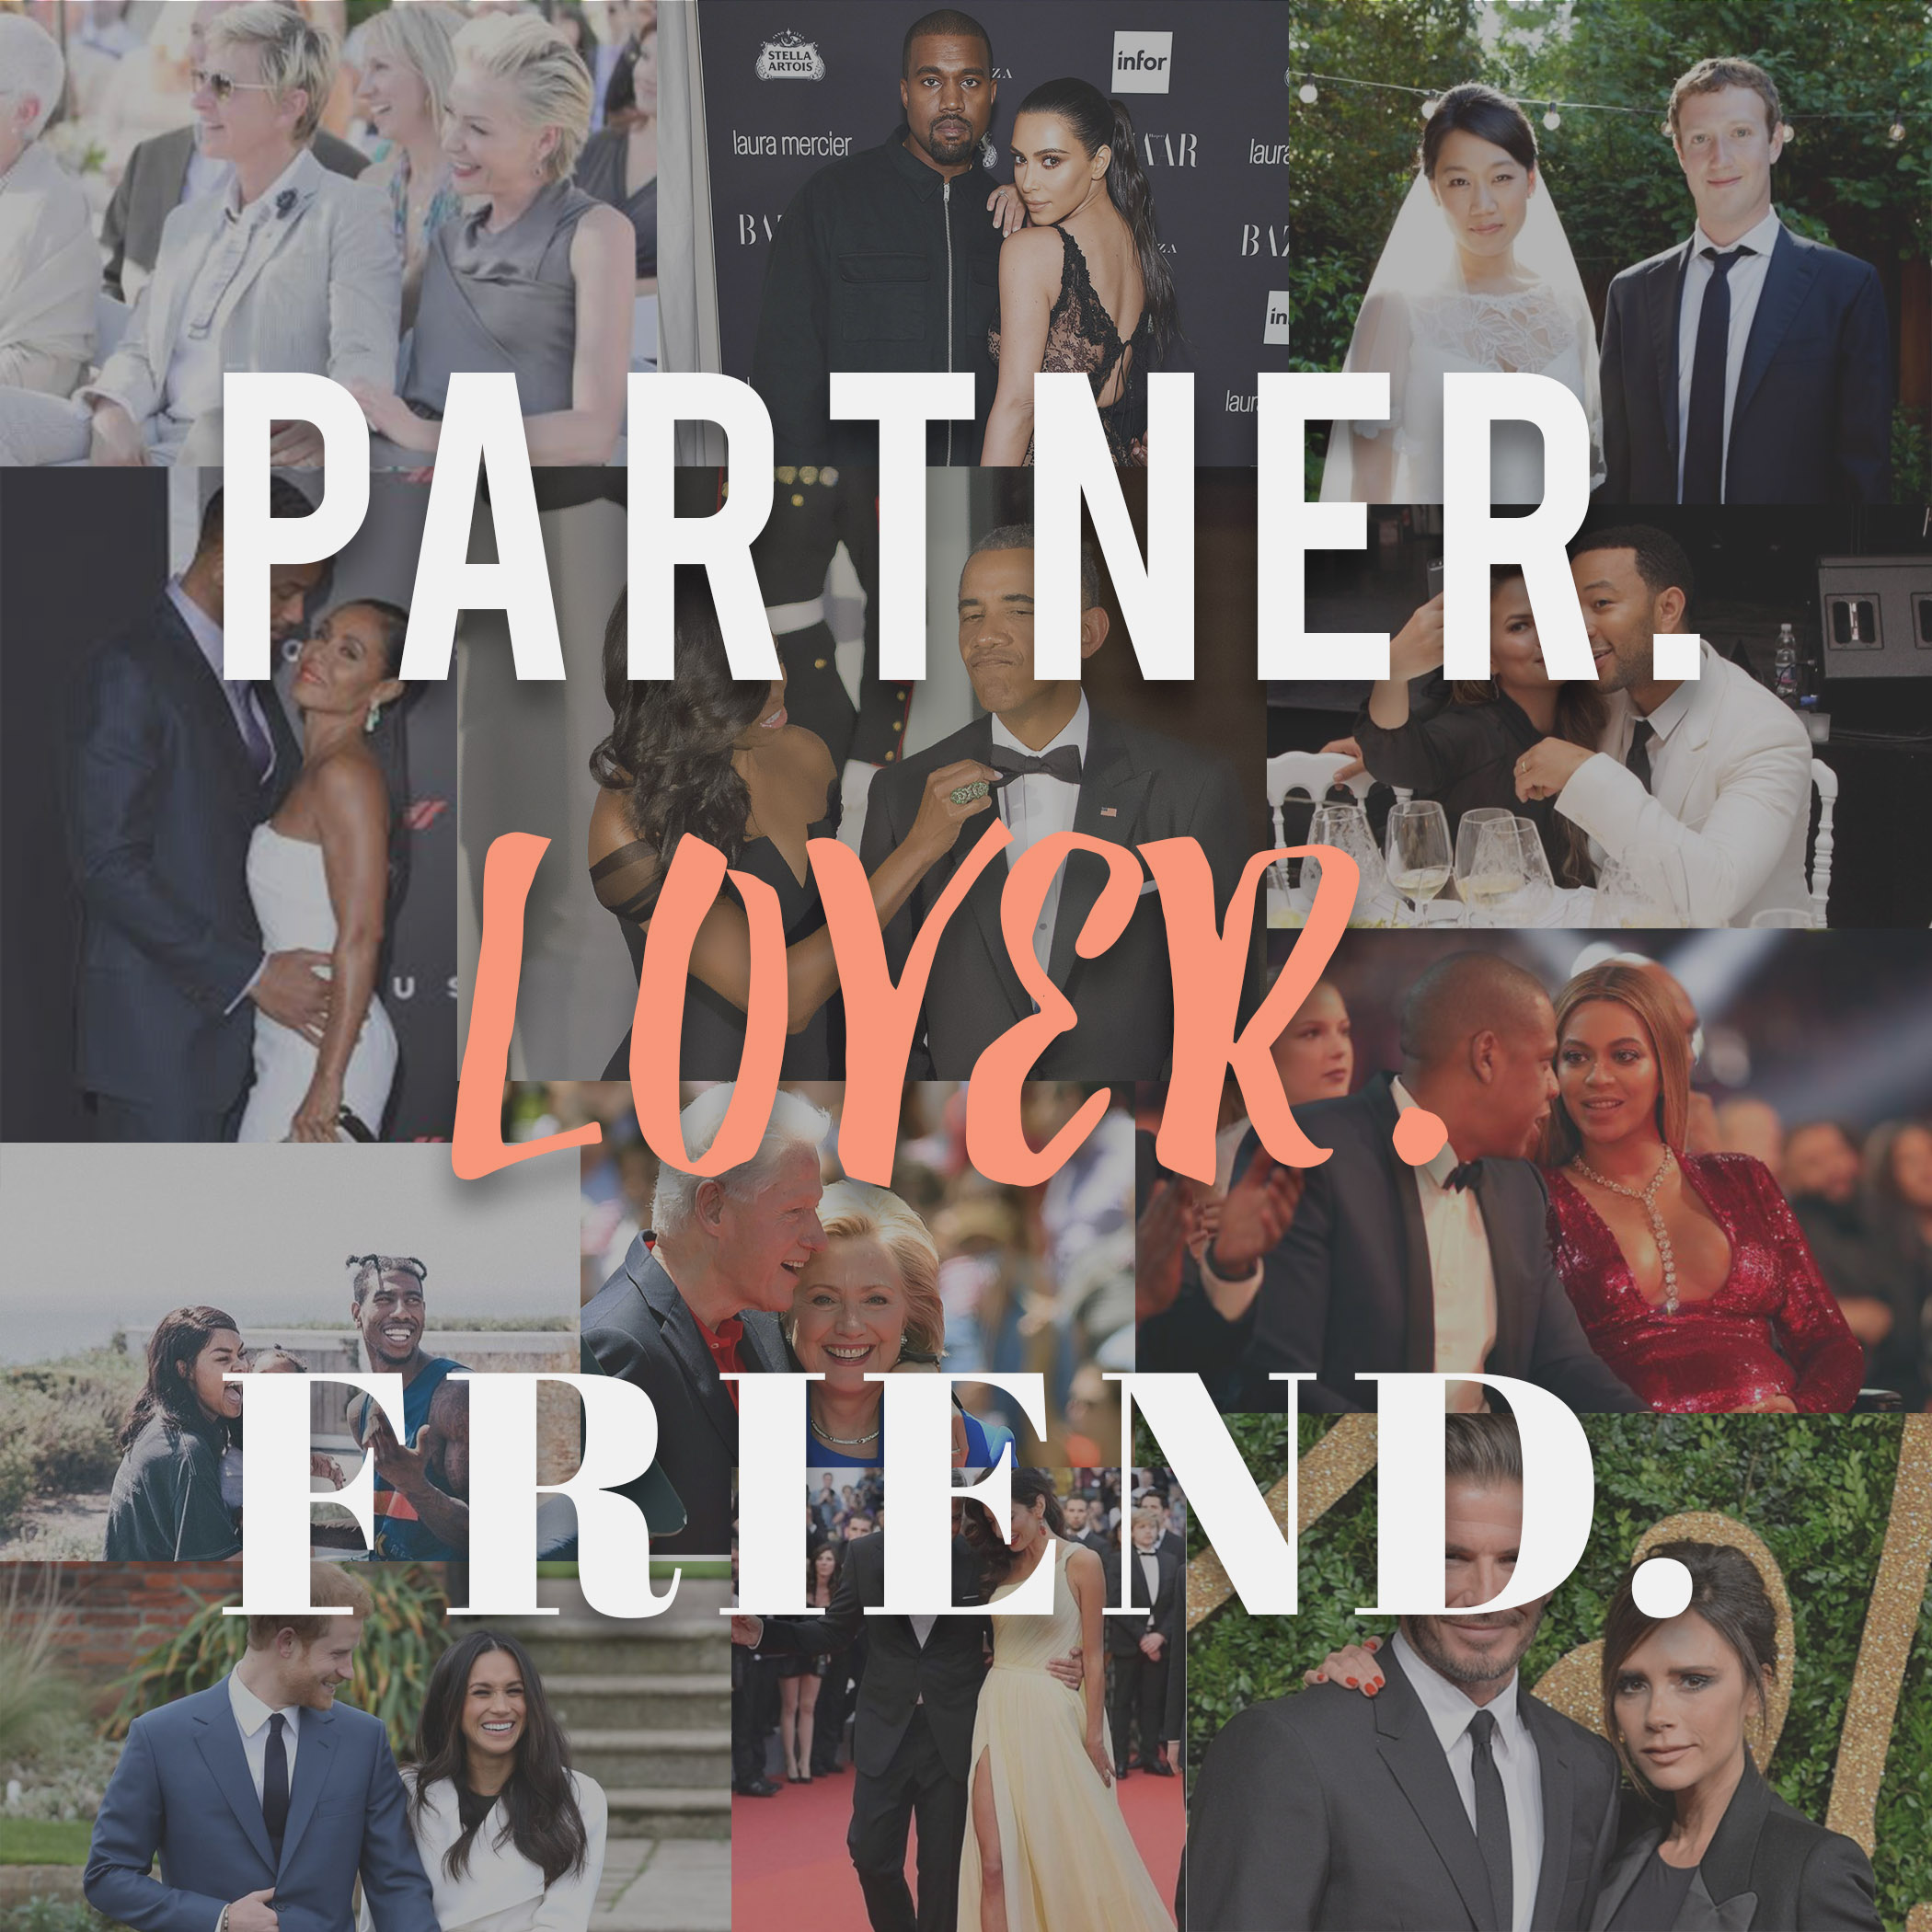 Partner, Lover, Friend